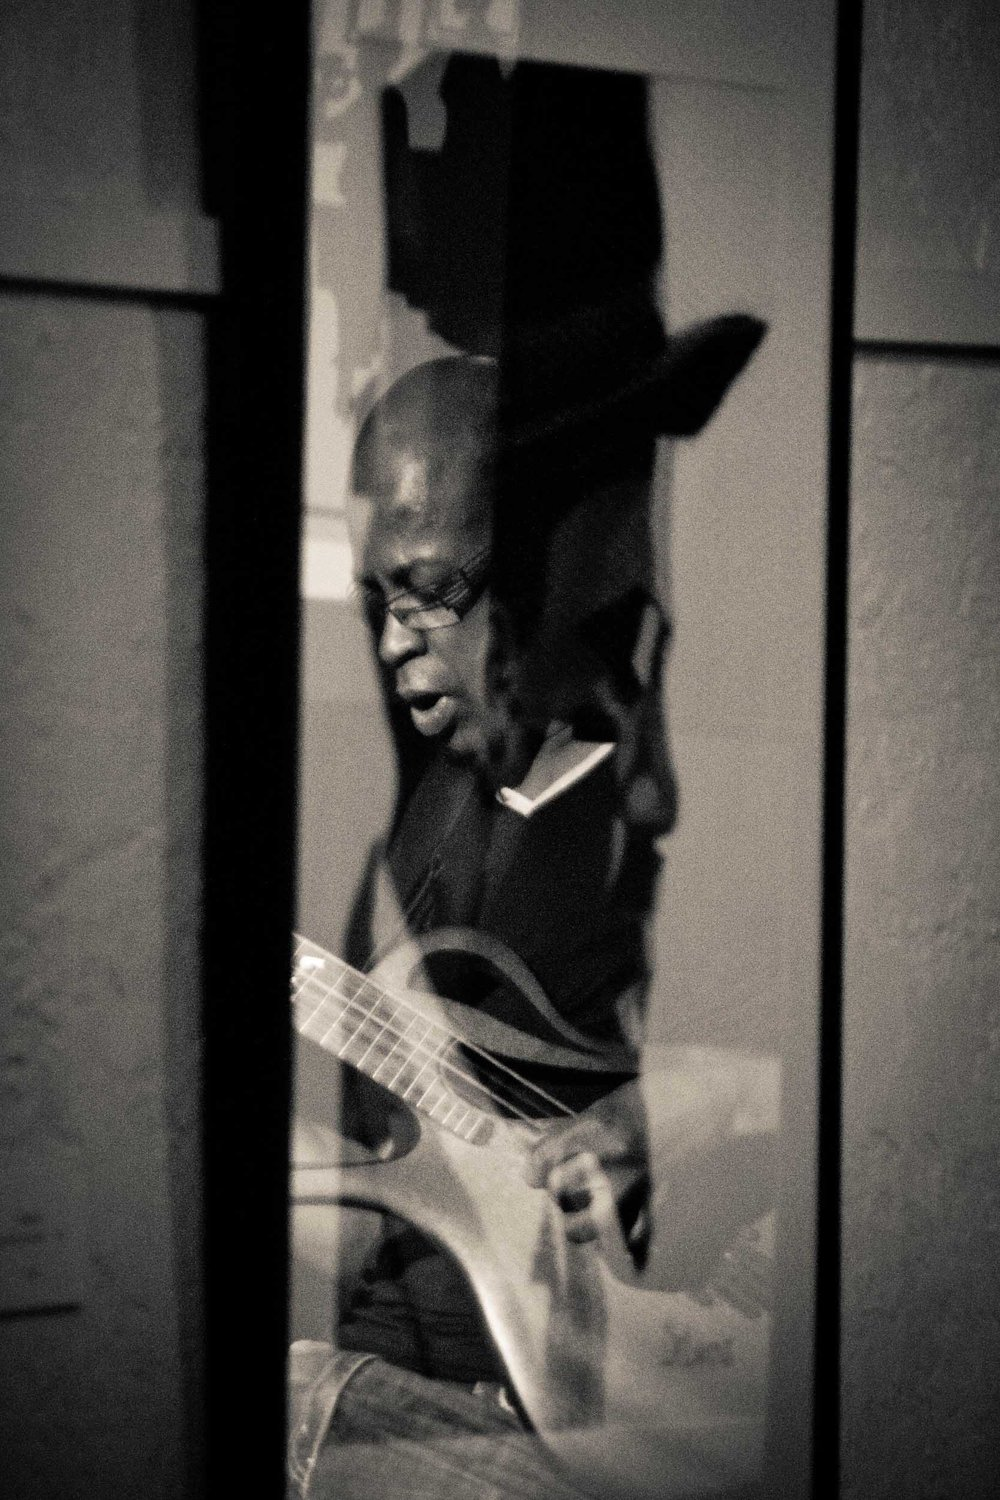 Lionel Loueke at the Jazz Gallery from Unchromed: Jazz NYC - Digital Photograph, 2012, © Jin Zhao